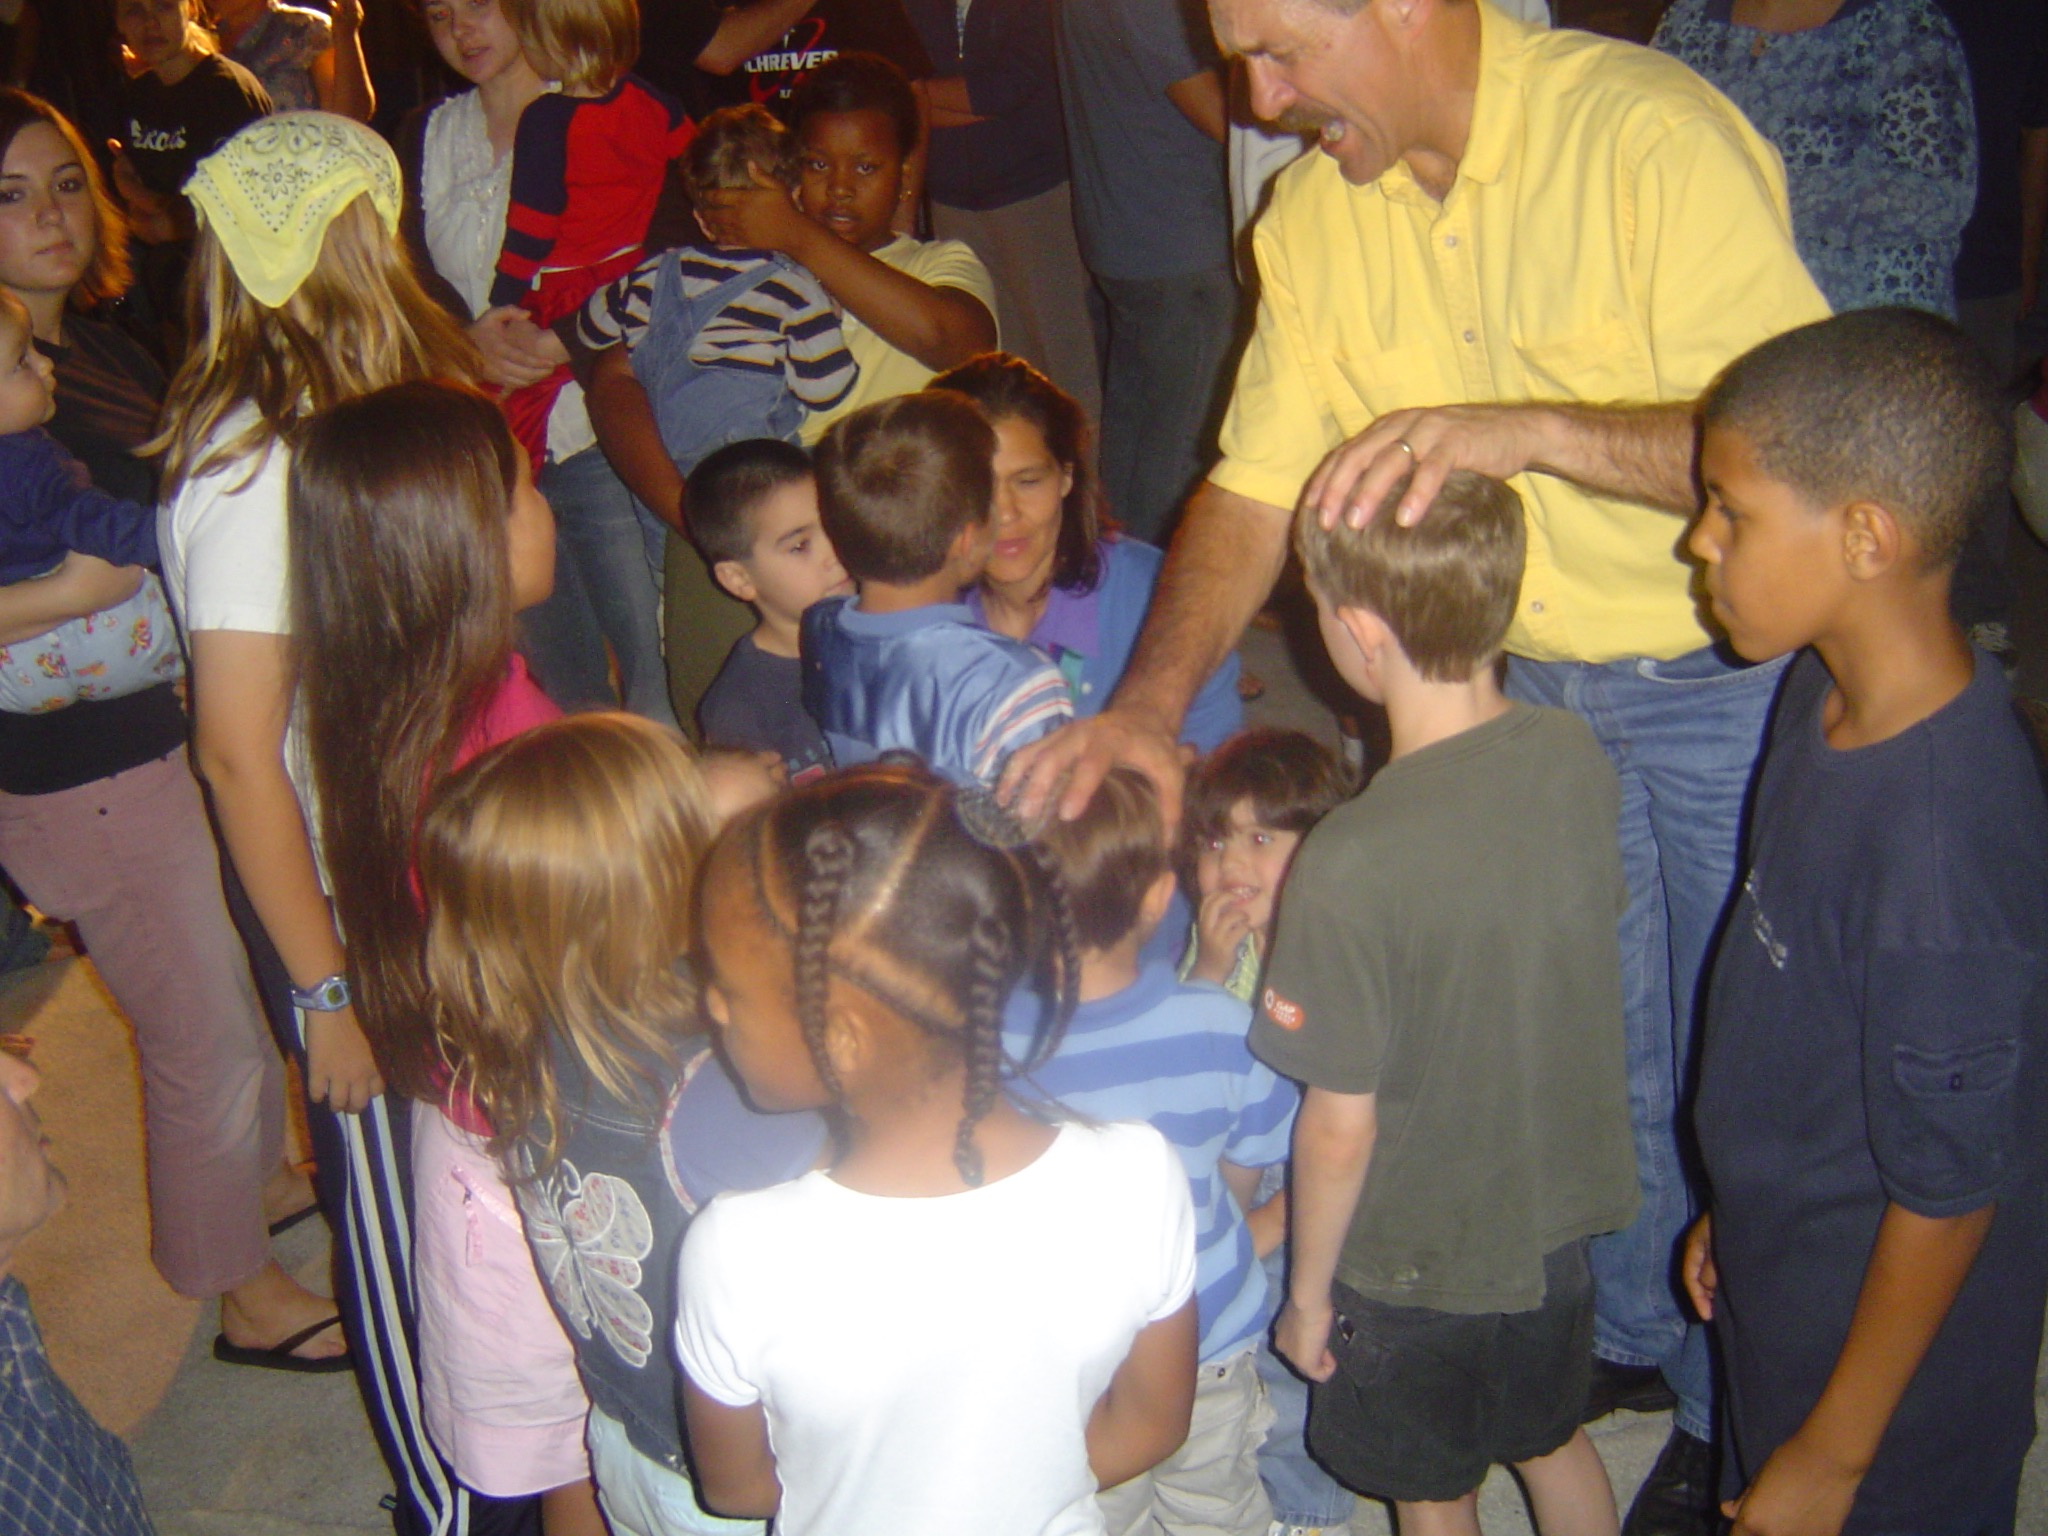 Lou Engle, leader, Cause USA prays for the children